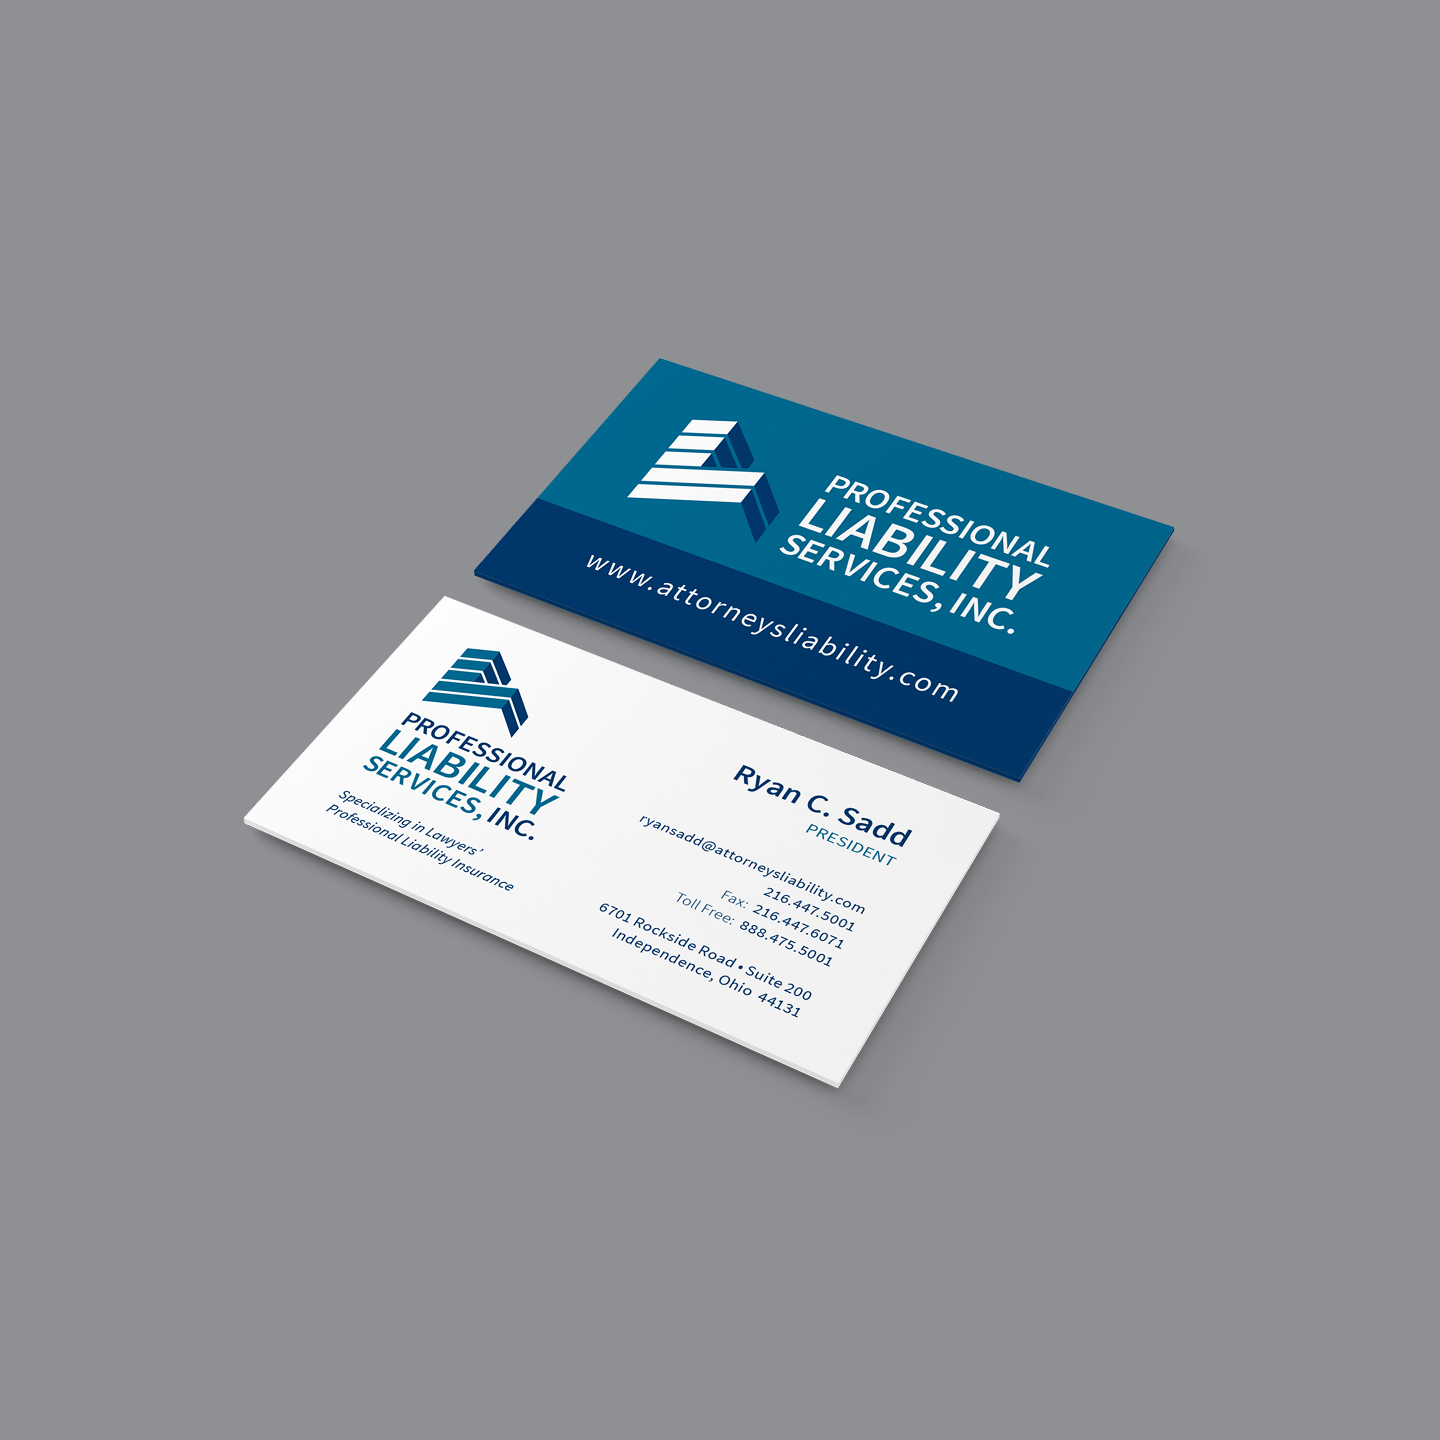 PLSI Business Cards